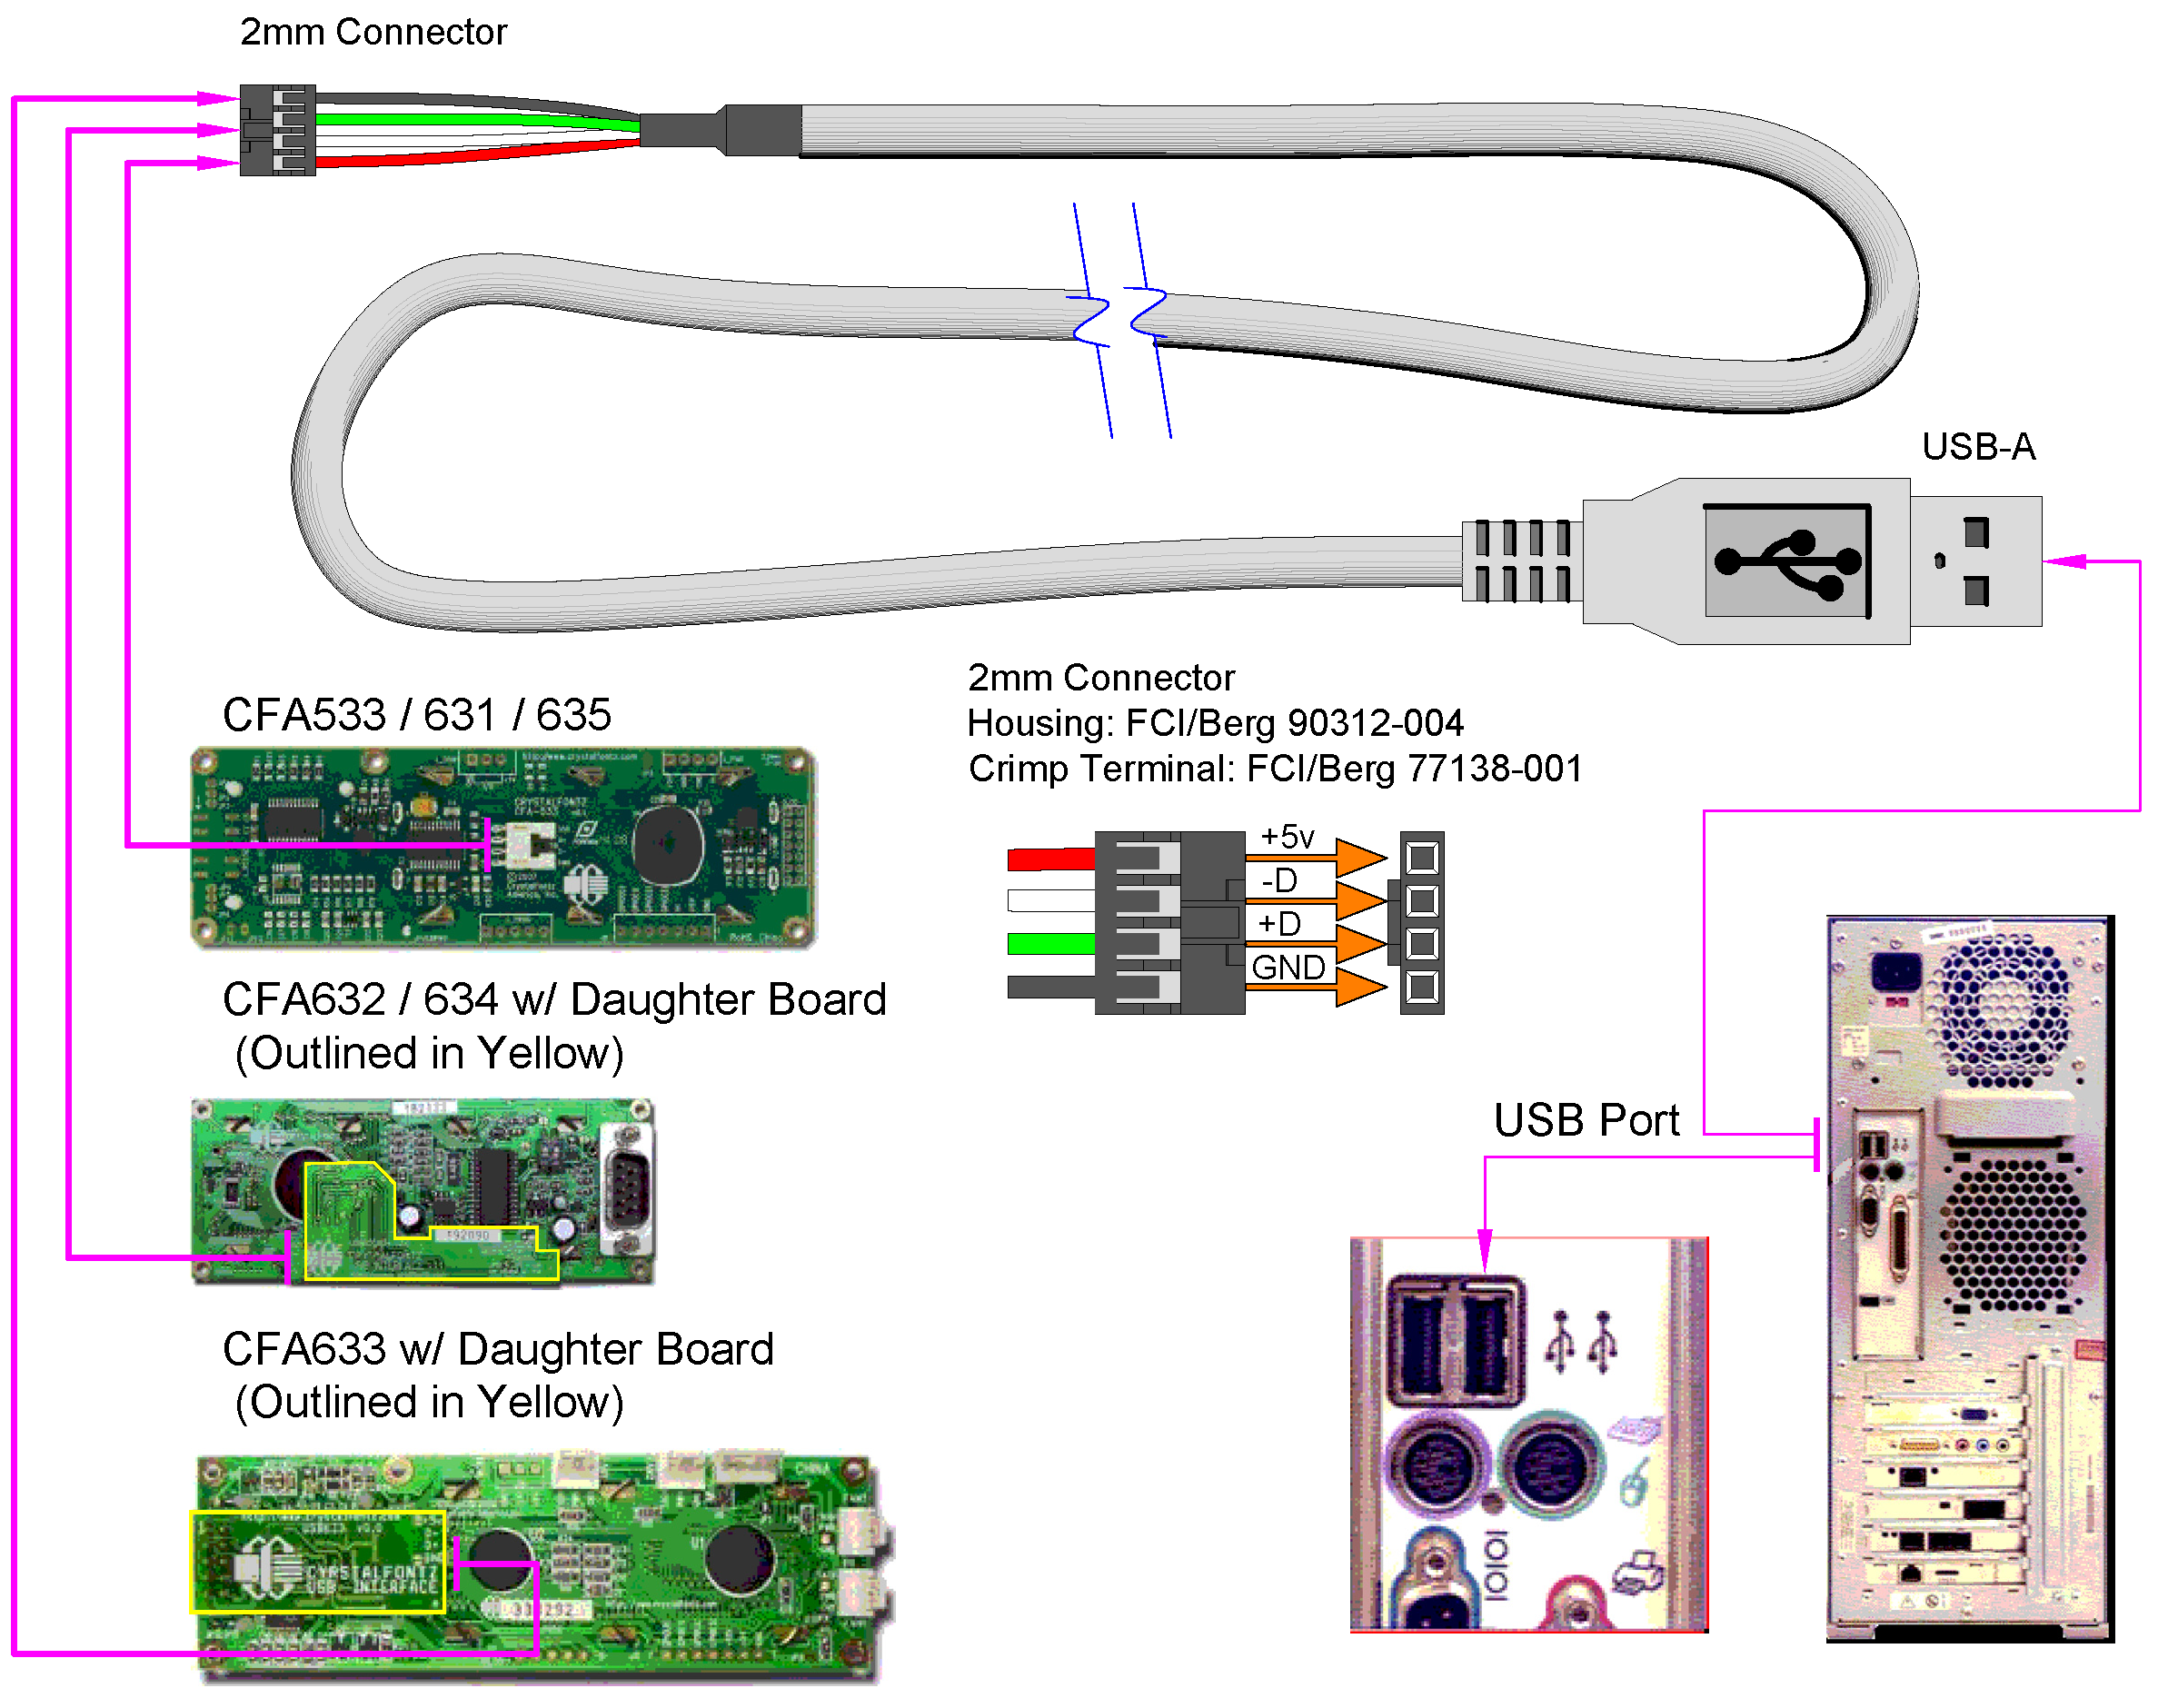 Best Of Wiring Diagram Micro Usb Diagrams Digramssample Diagramimages Wiringdiagramsample Wiringdiagram Usb Electronica